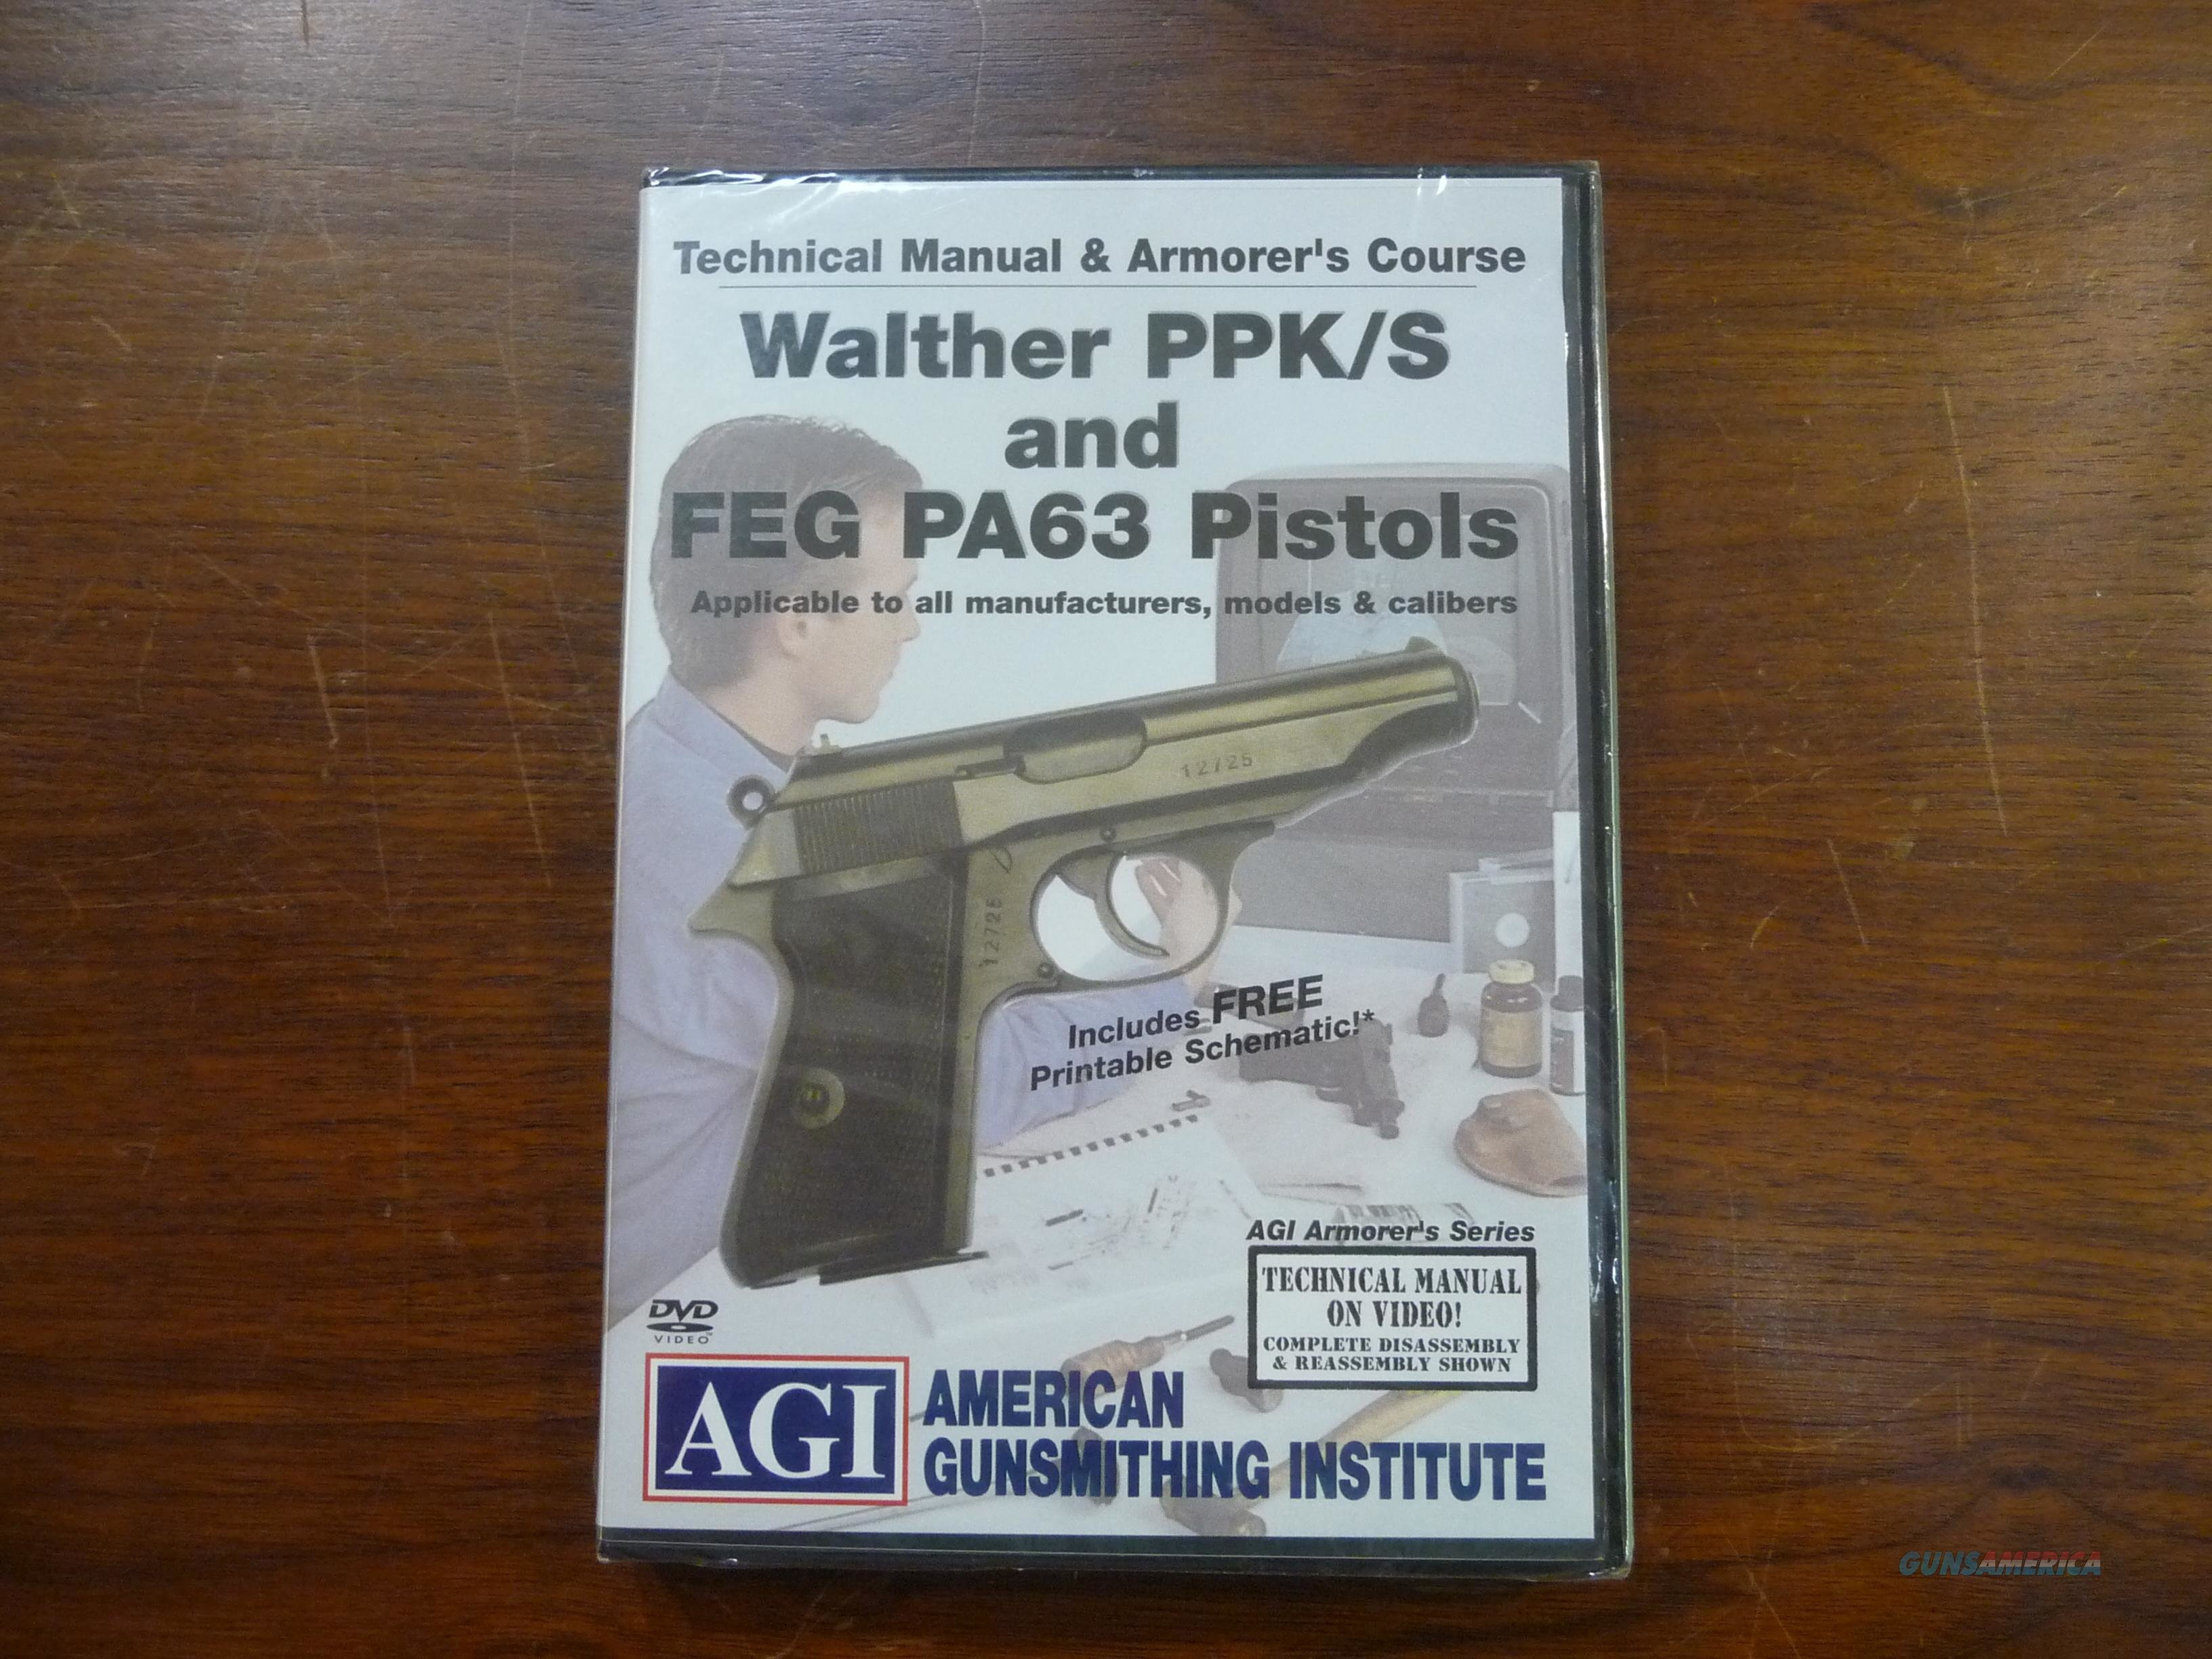 AGI Armorer's Course for Walther PPK/S & FEG PA63 Pistols  Non-Guns > Educational Tapes/Courses